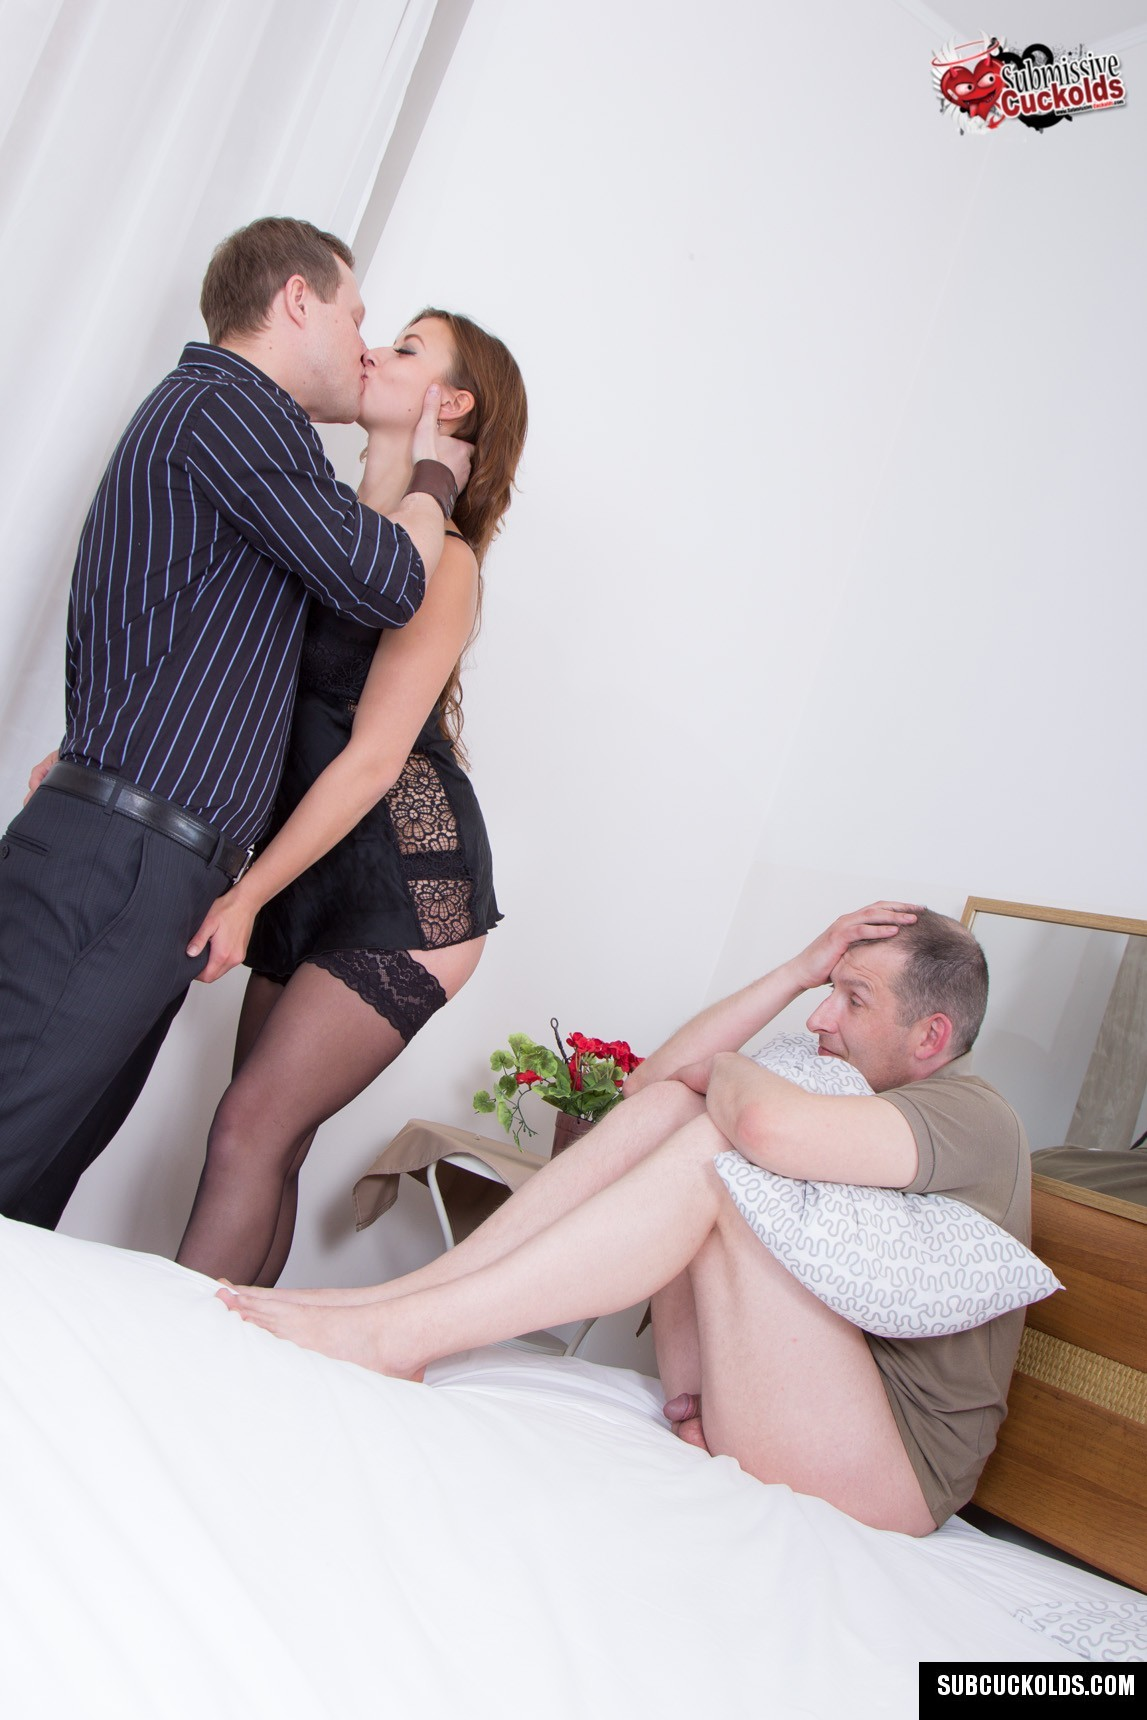 Mature wife and her subby hubby cuckold